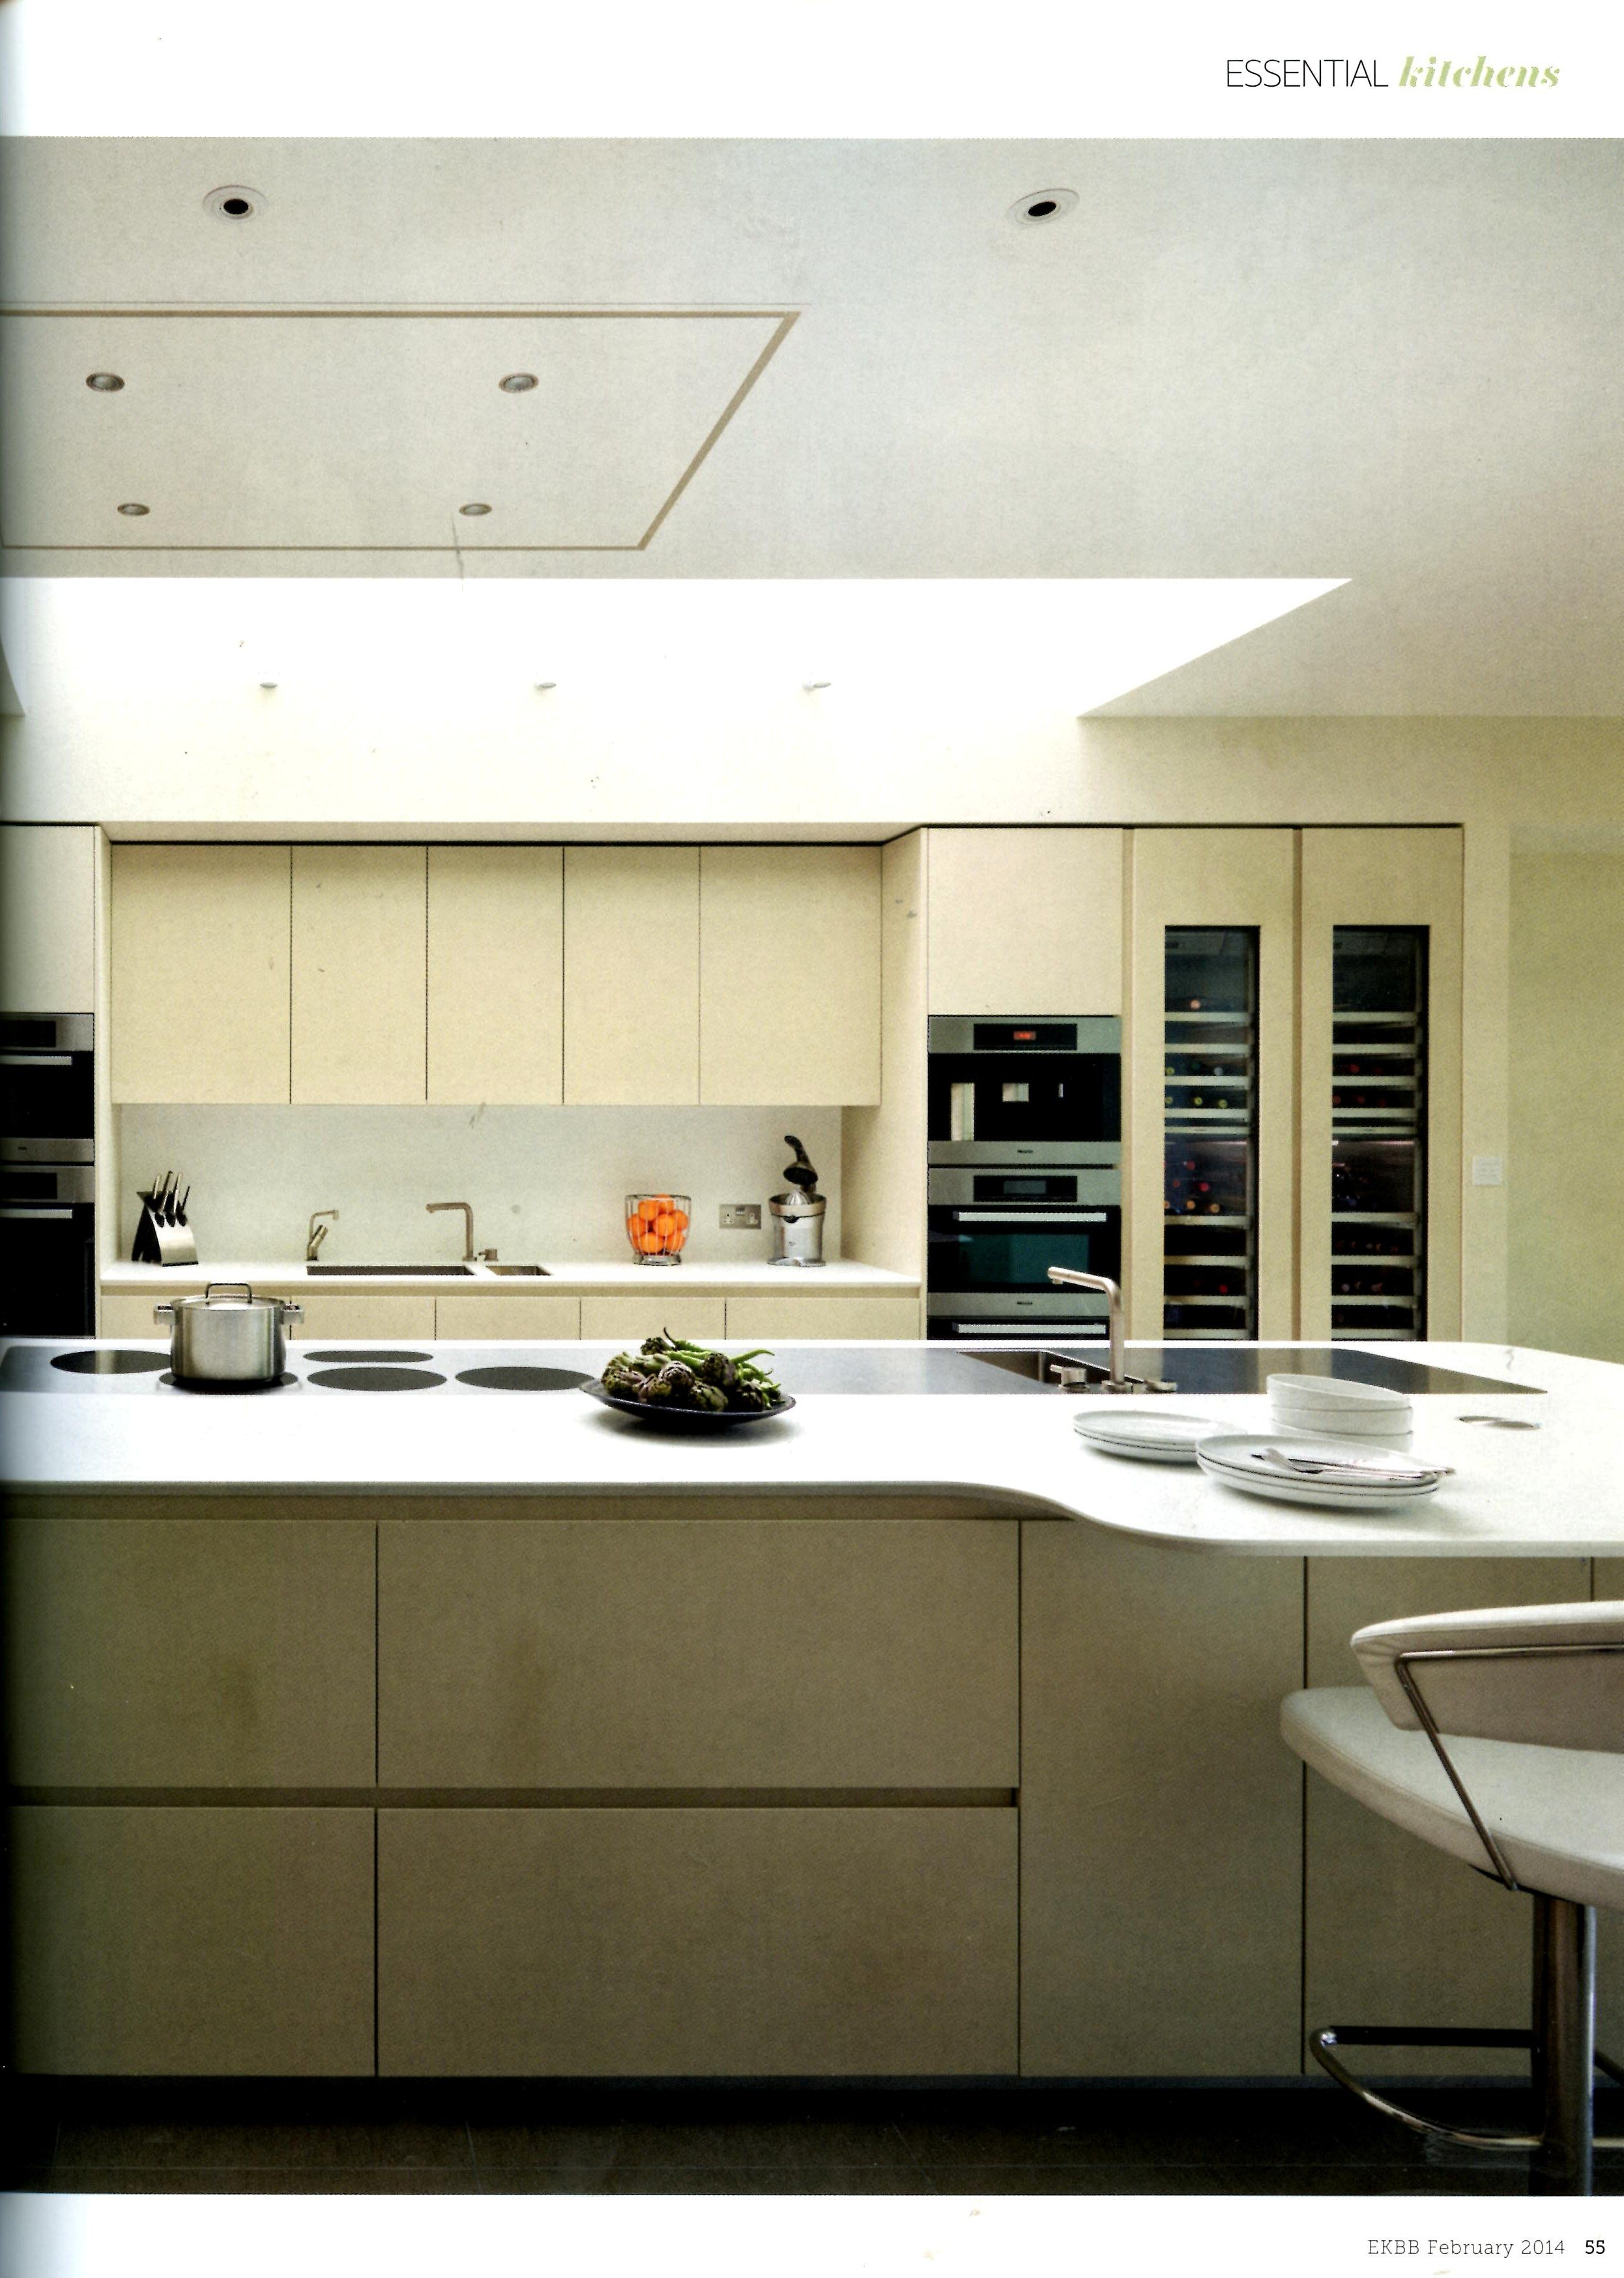 Modulnova Twenty Kitchen From Design Space London With Handleless Cabinetry